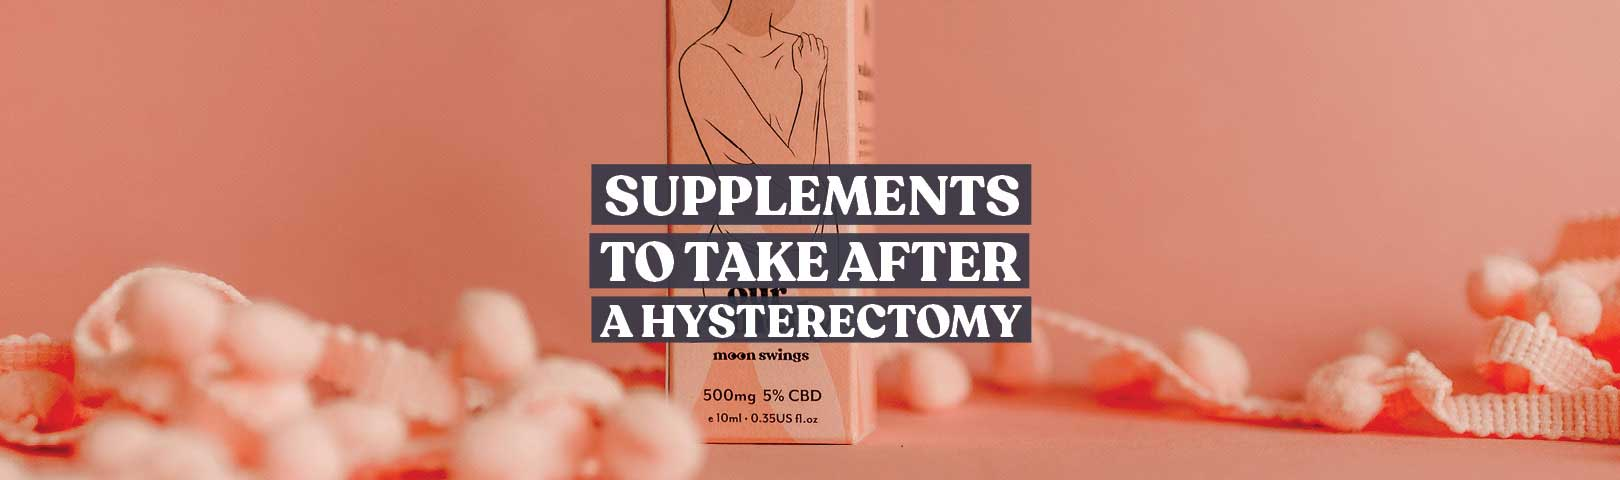 supplements to take after hysterectomy